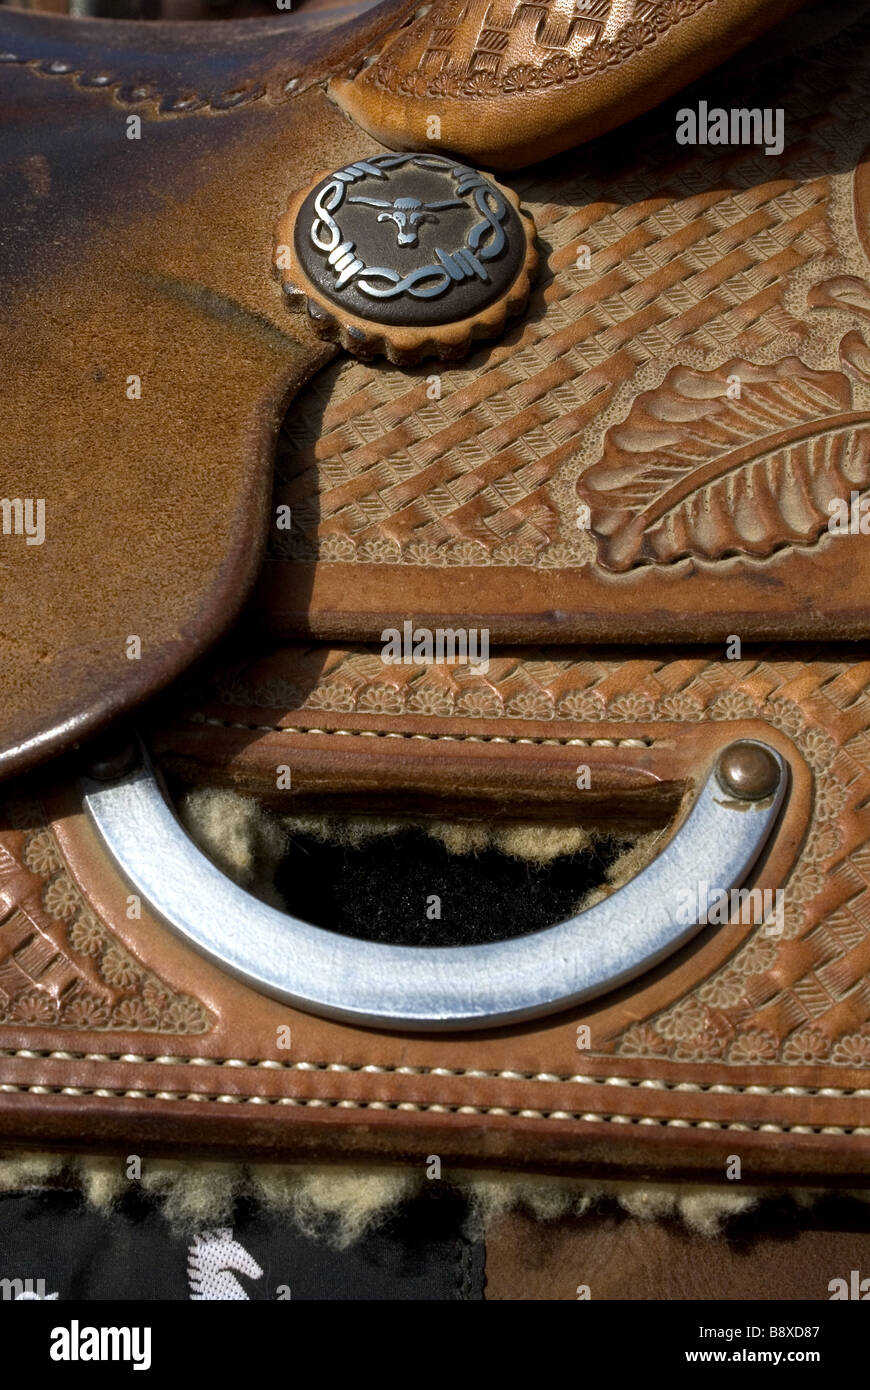 Leather Saddle Detail with Leaf Pattern - Stock Image